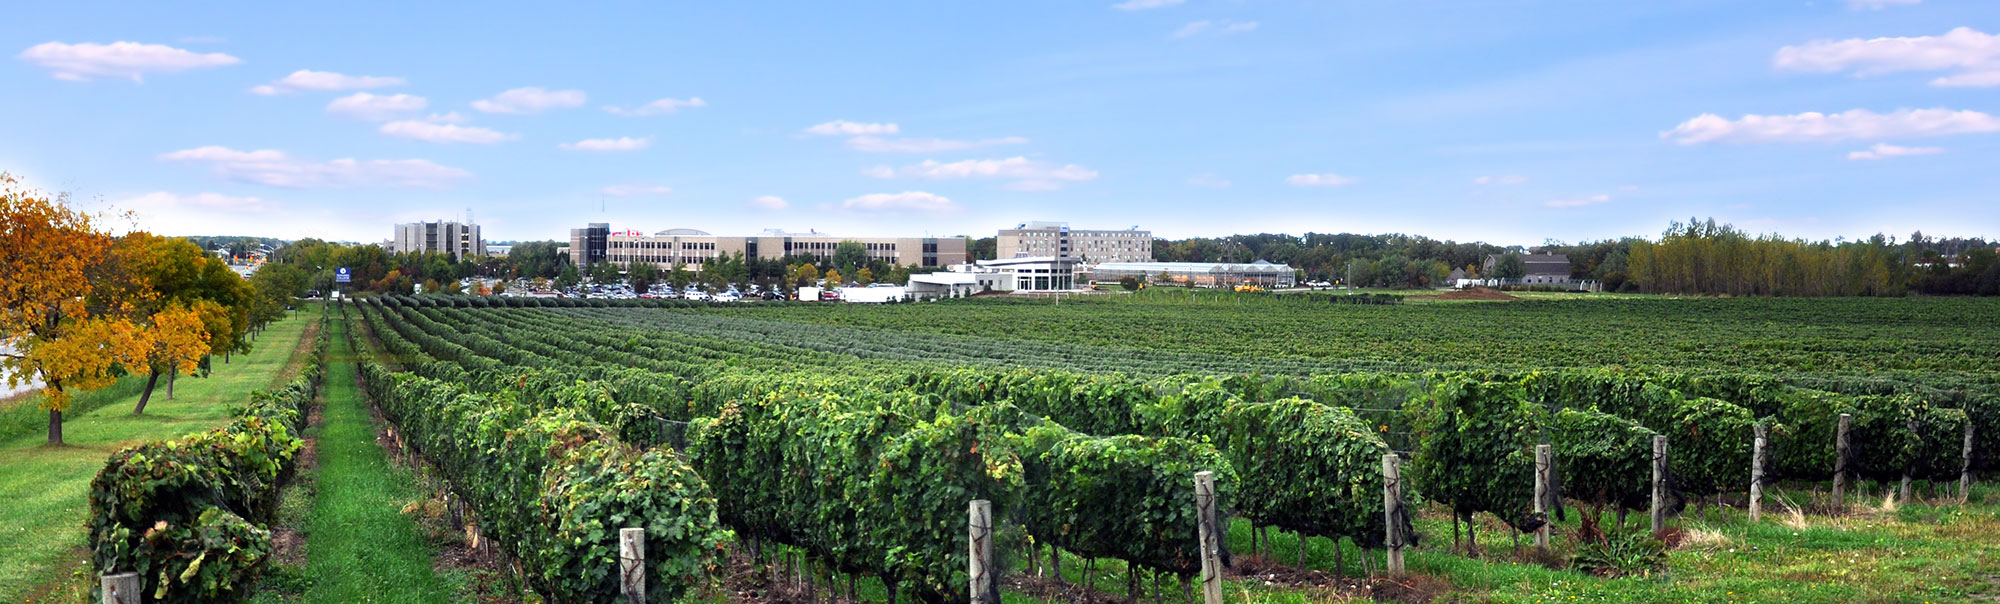 A view over the NC Teaching Winery Vineyards, toward the Niagara-on-the-Lake Campus